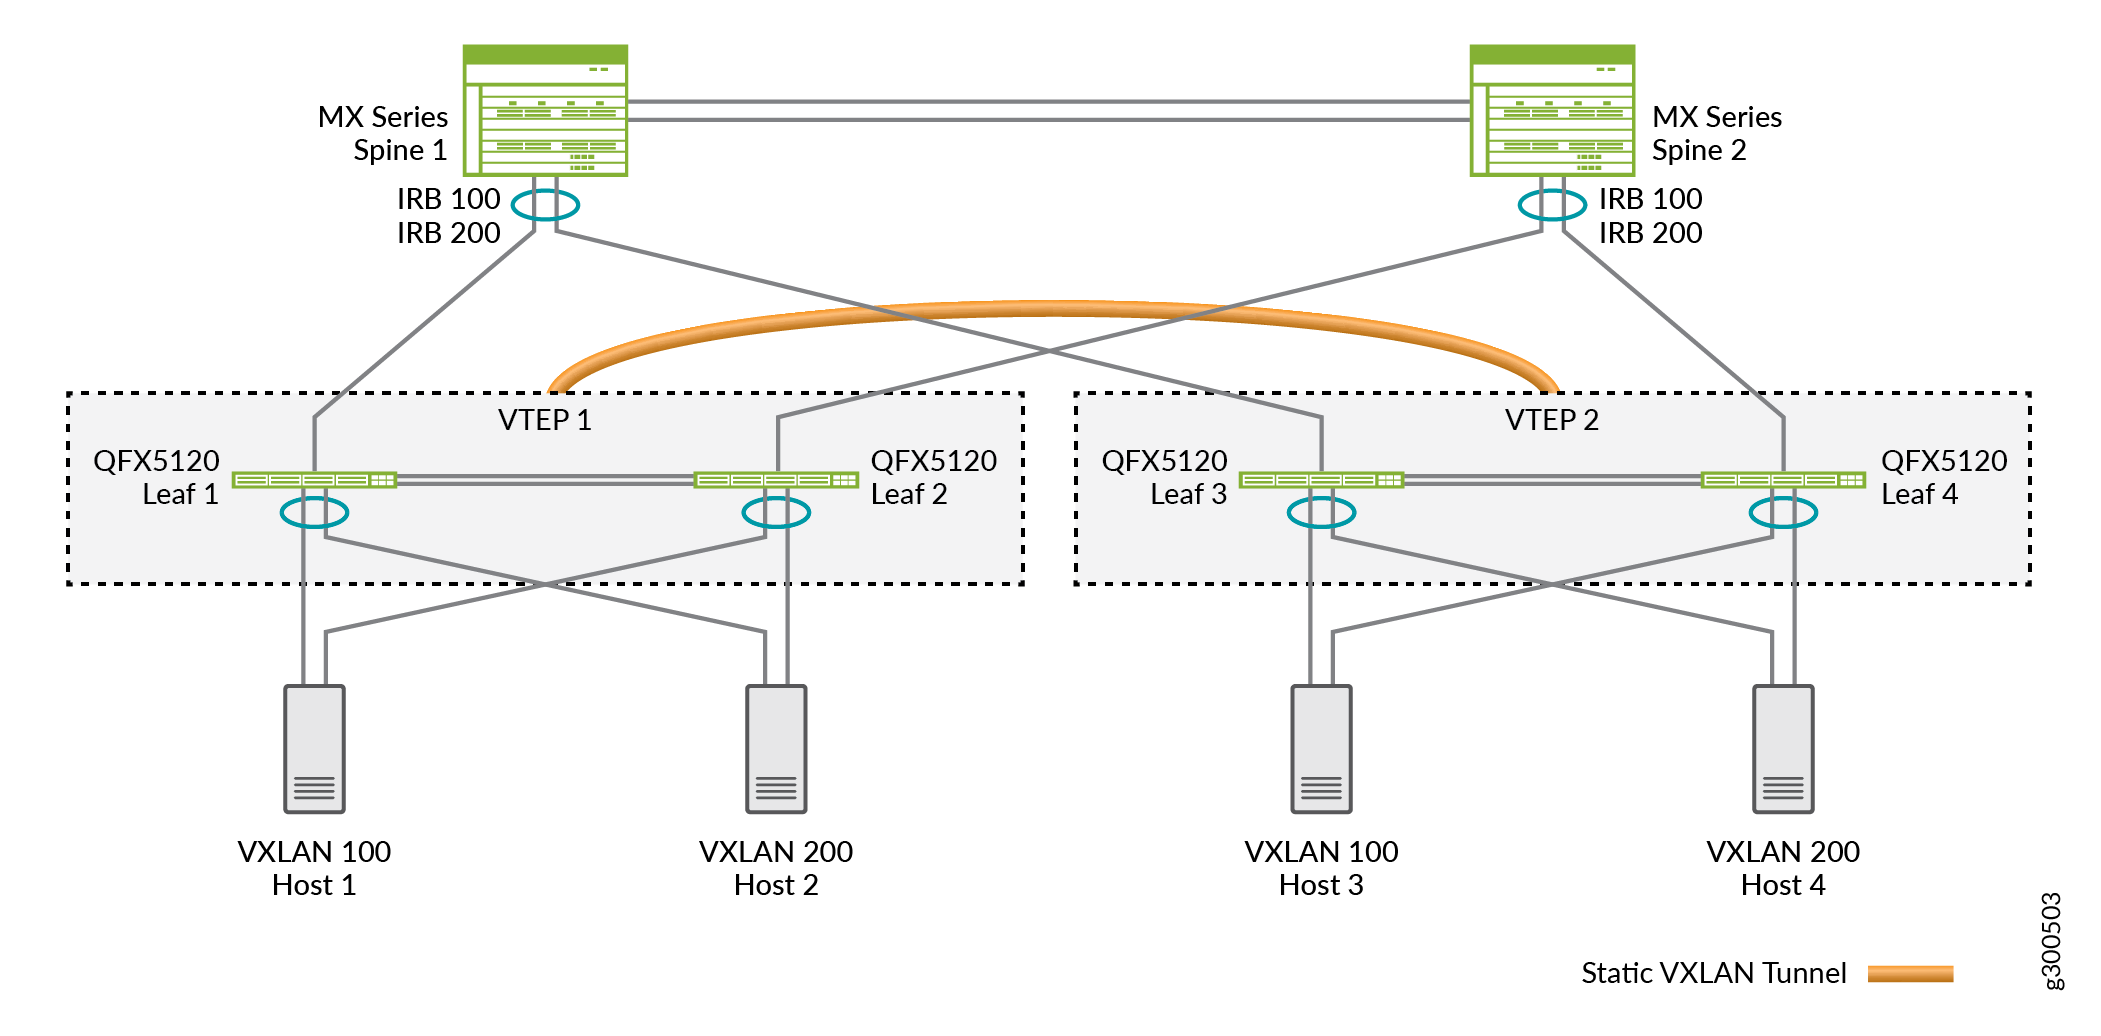 Sample MC-LAG Network with Static VXLAN